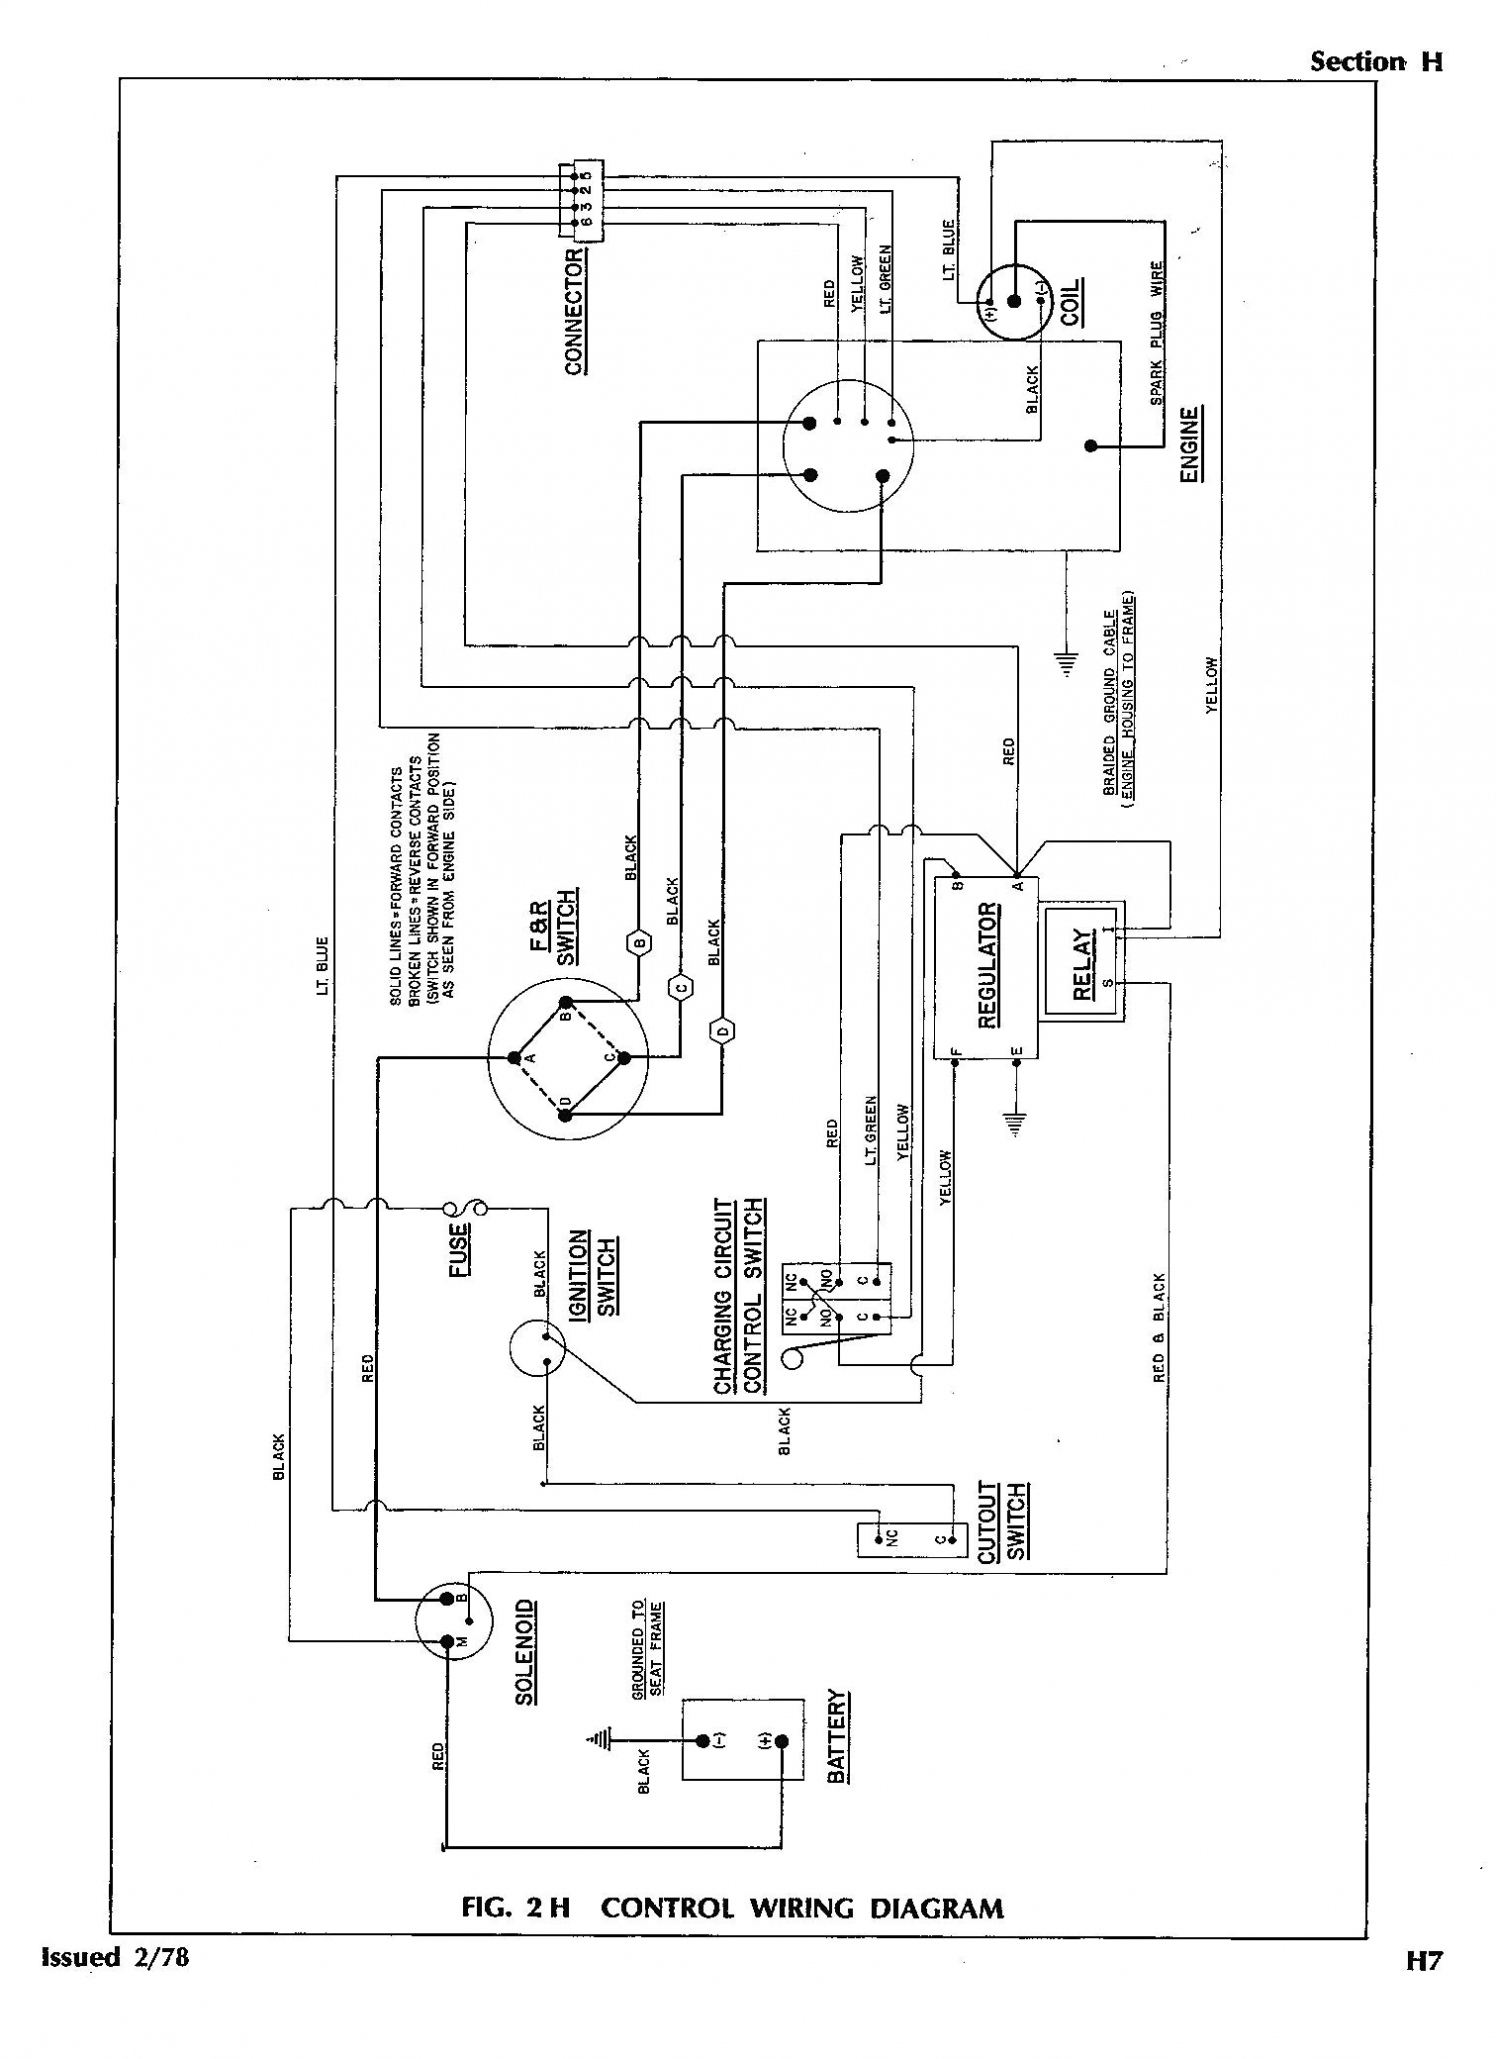 Wiring Diagram For A Golf Cart | Wiring Library - Golf Cart Solenoid Wiring Diagram